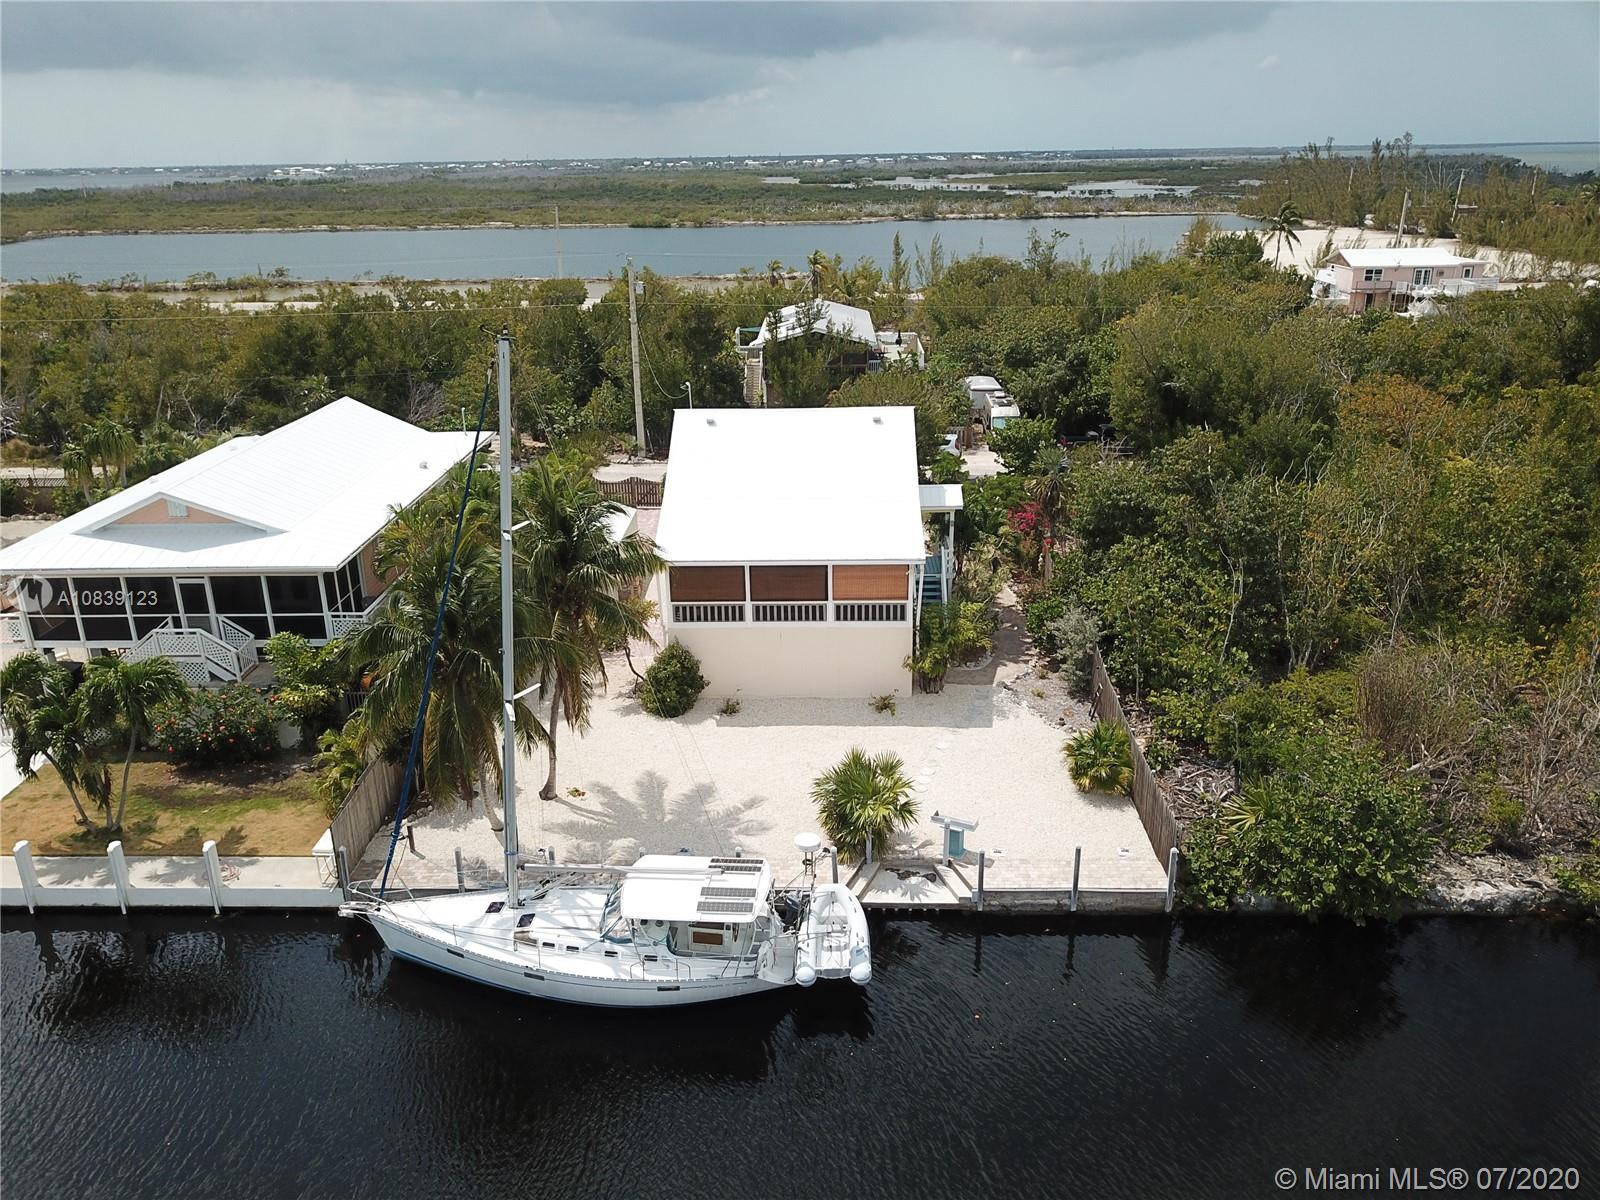 2047 Bahia Shores Road, Big Pine, FL 33043 - Big Pine, FL real estate listing